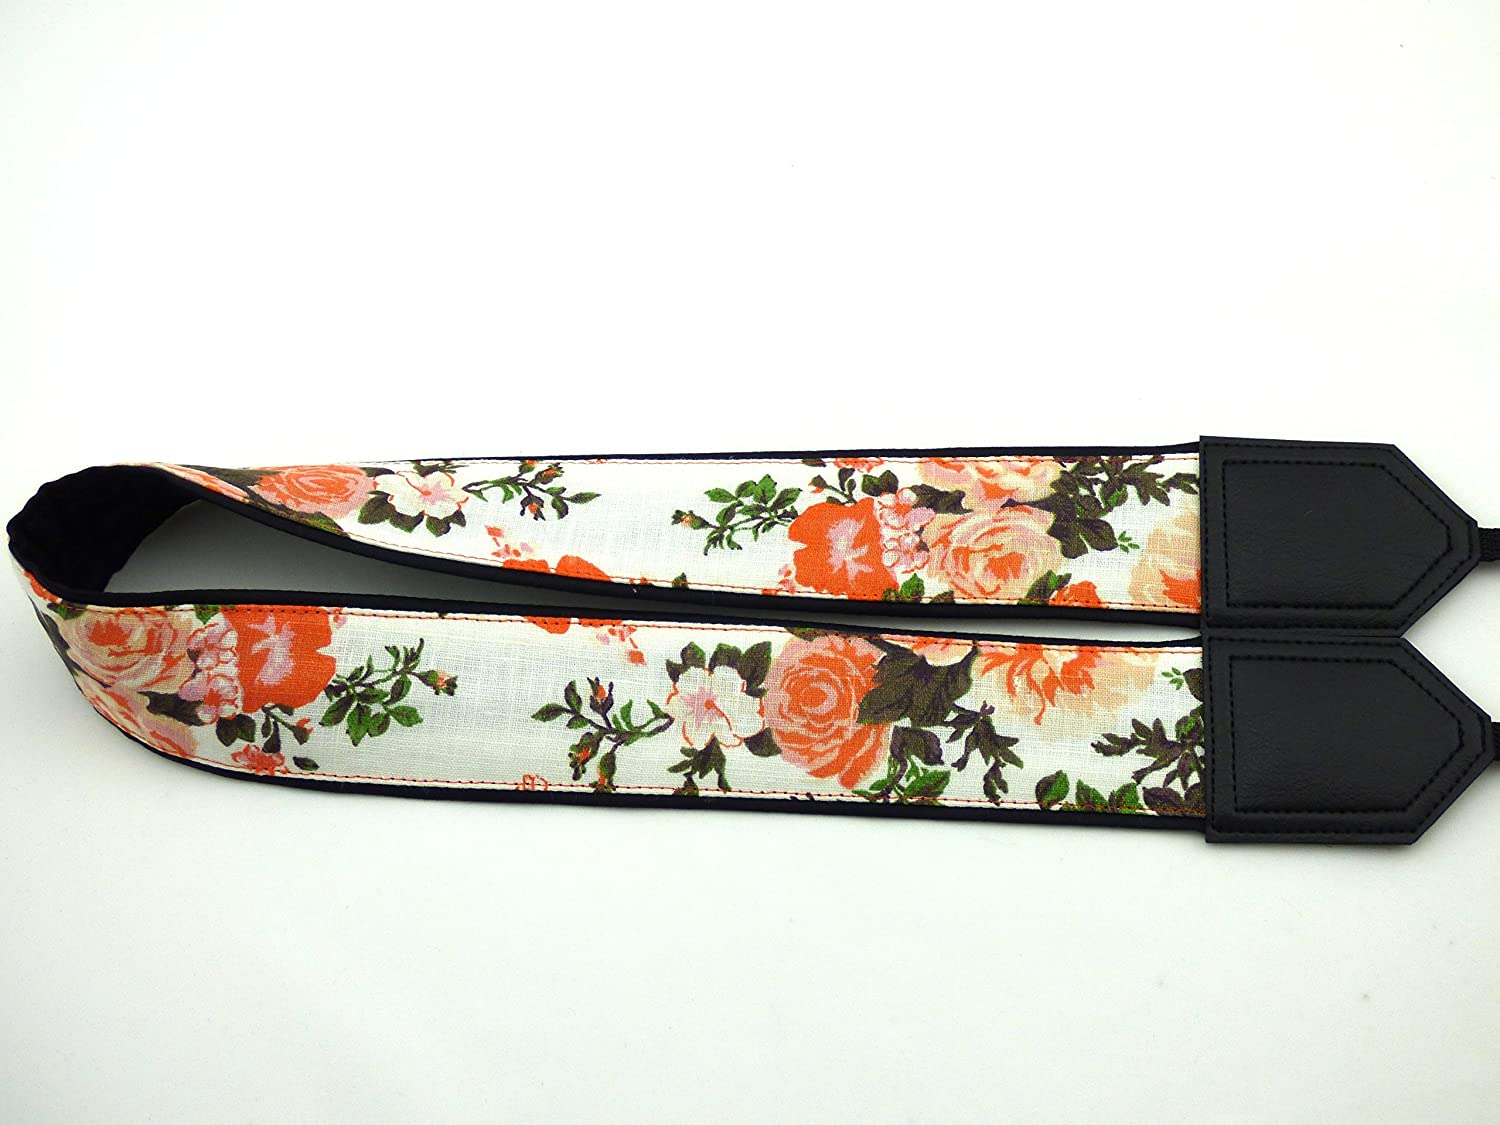 Vintage Botanical Camera Strap Beige Roses Camera Strap DSLR//SLR Black Floral Camera Strap InTePro Flower Camera Strap Light Weight and Well Padded Camera Strap Durable Code 00039